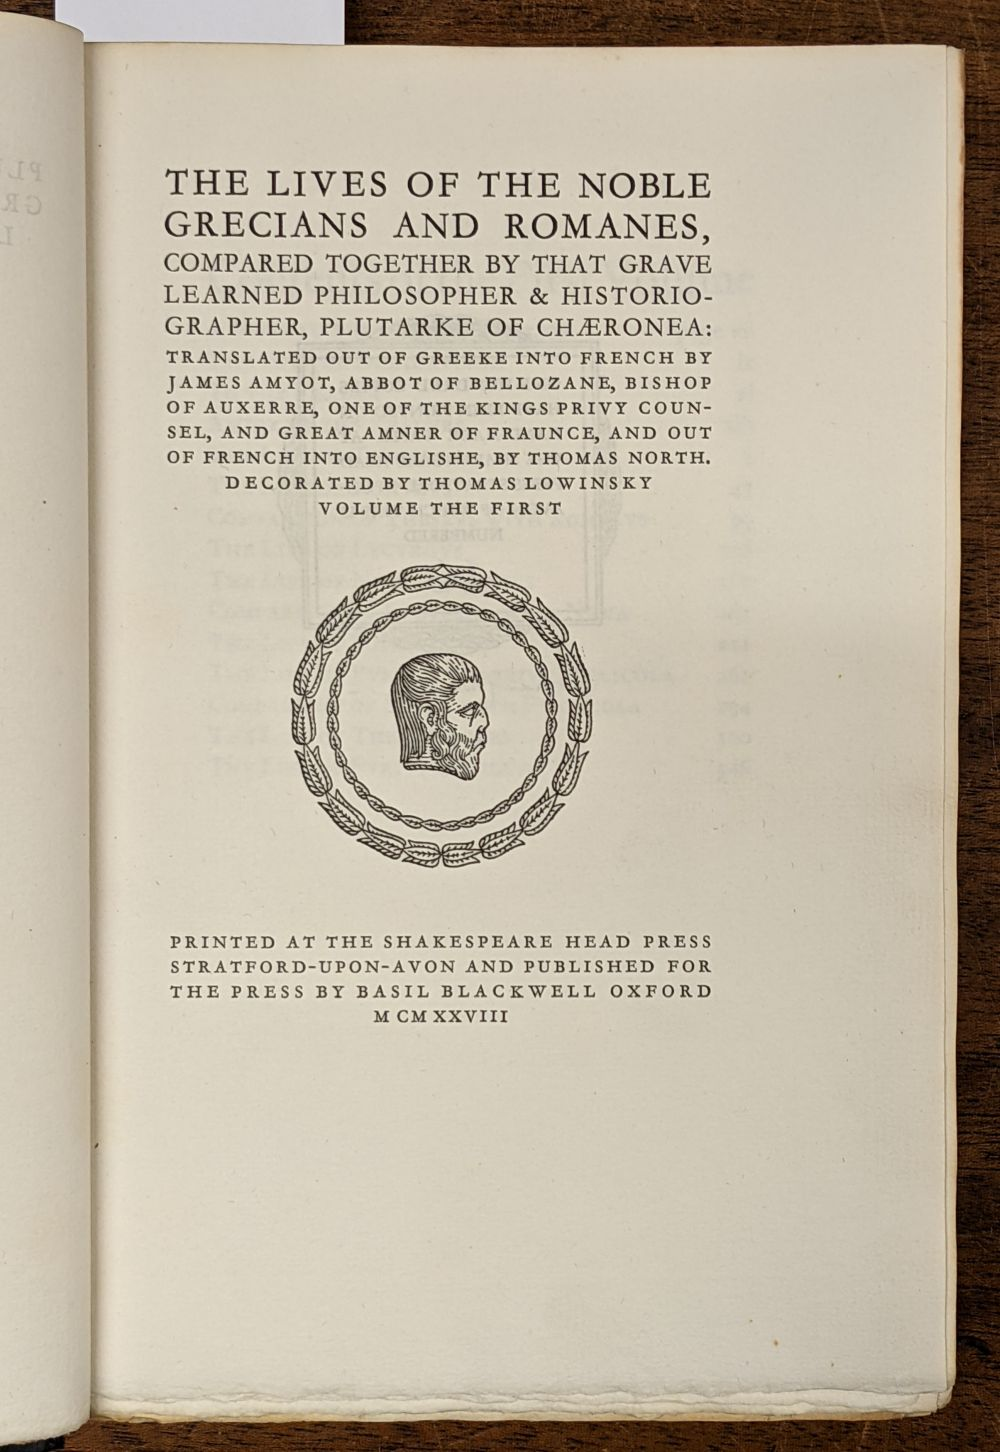 Shakespeare Head Press. Lives of the Noble Grecians and Romanes, 1928 - Image 11 of 13